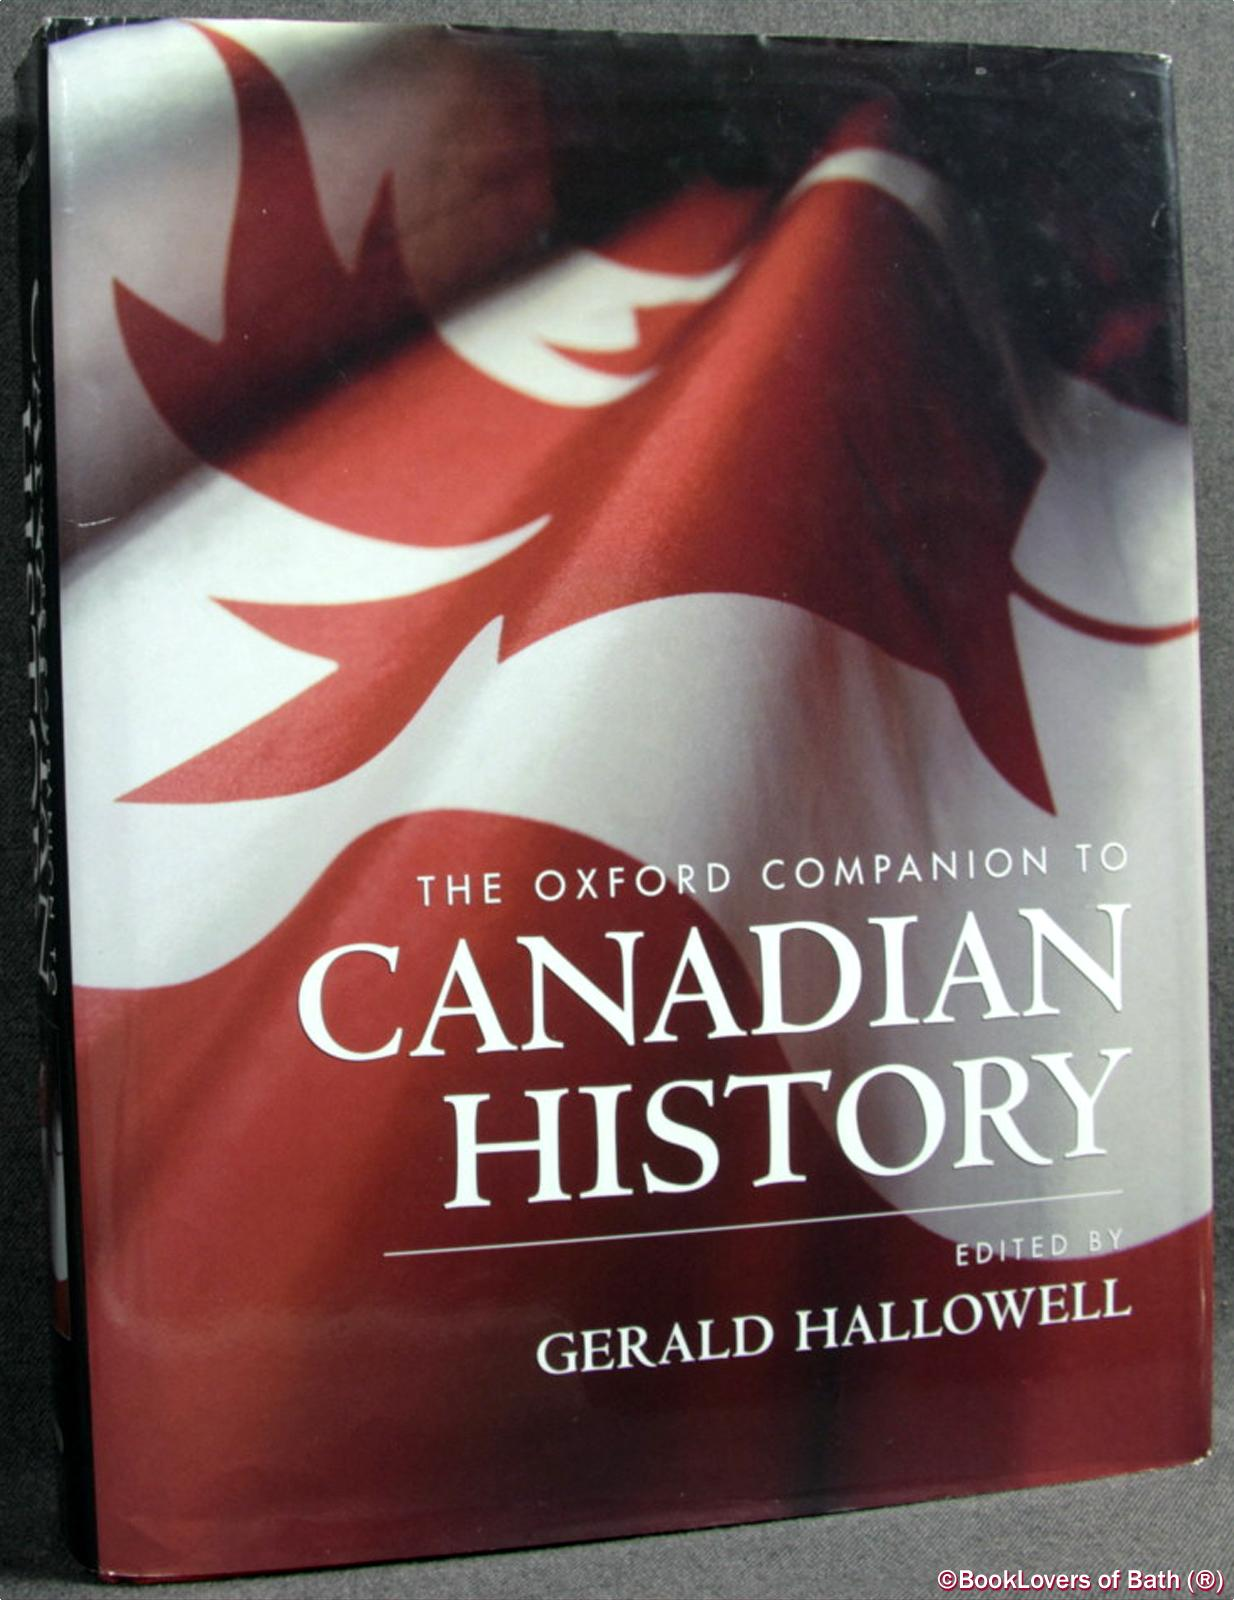 The Oxford Companion to Canadian History - Gerald Hallowell